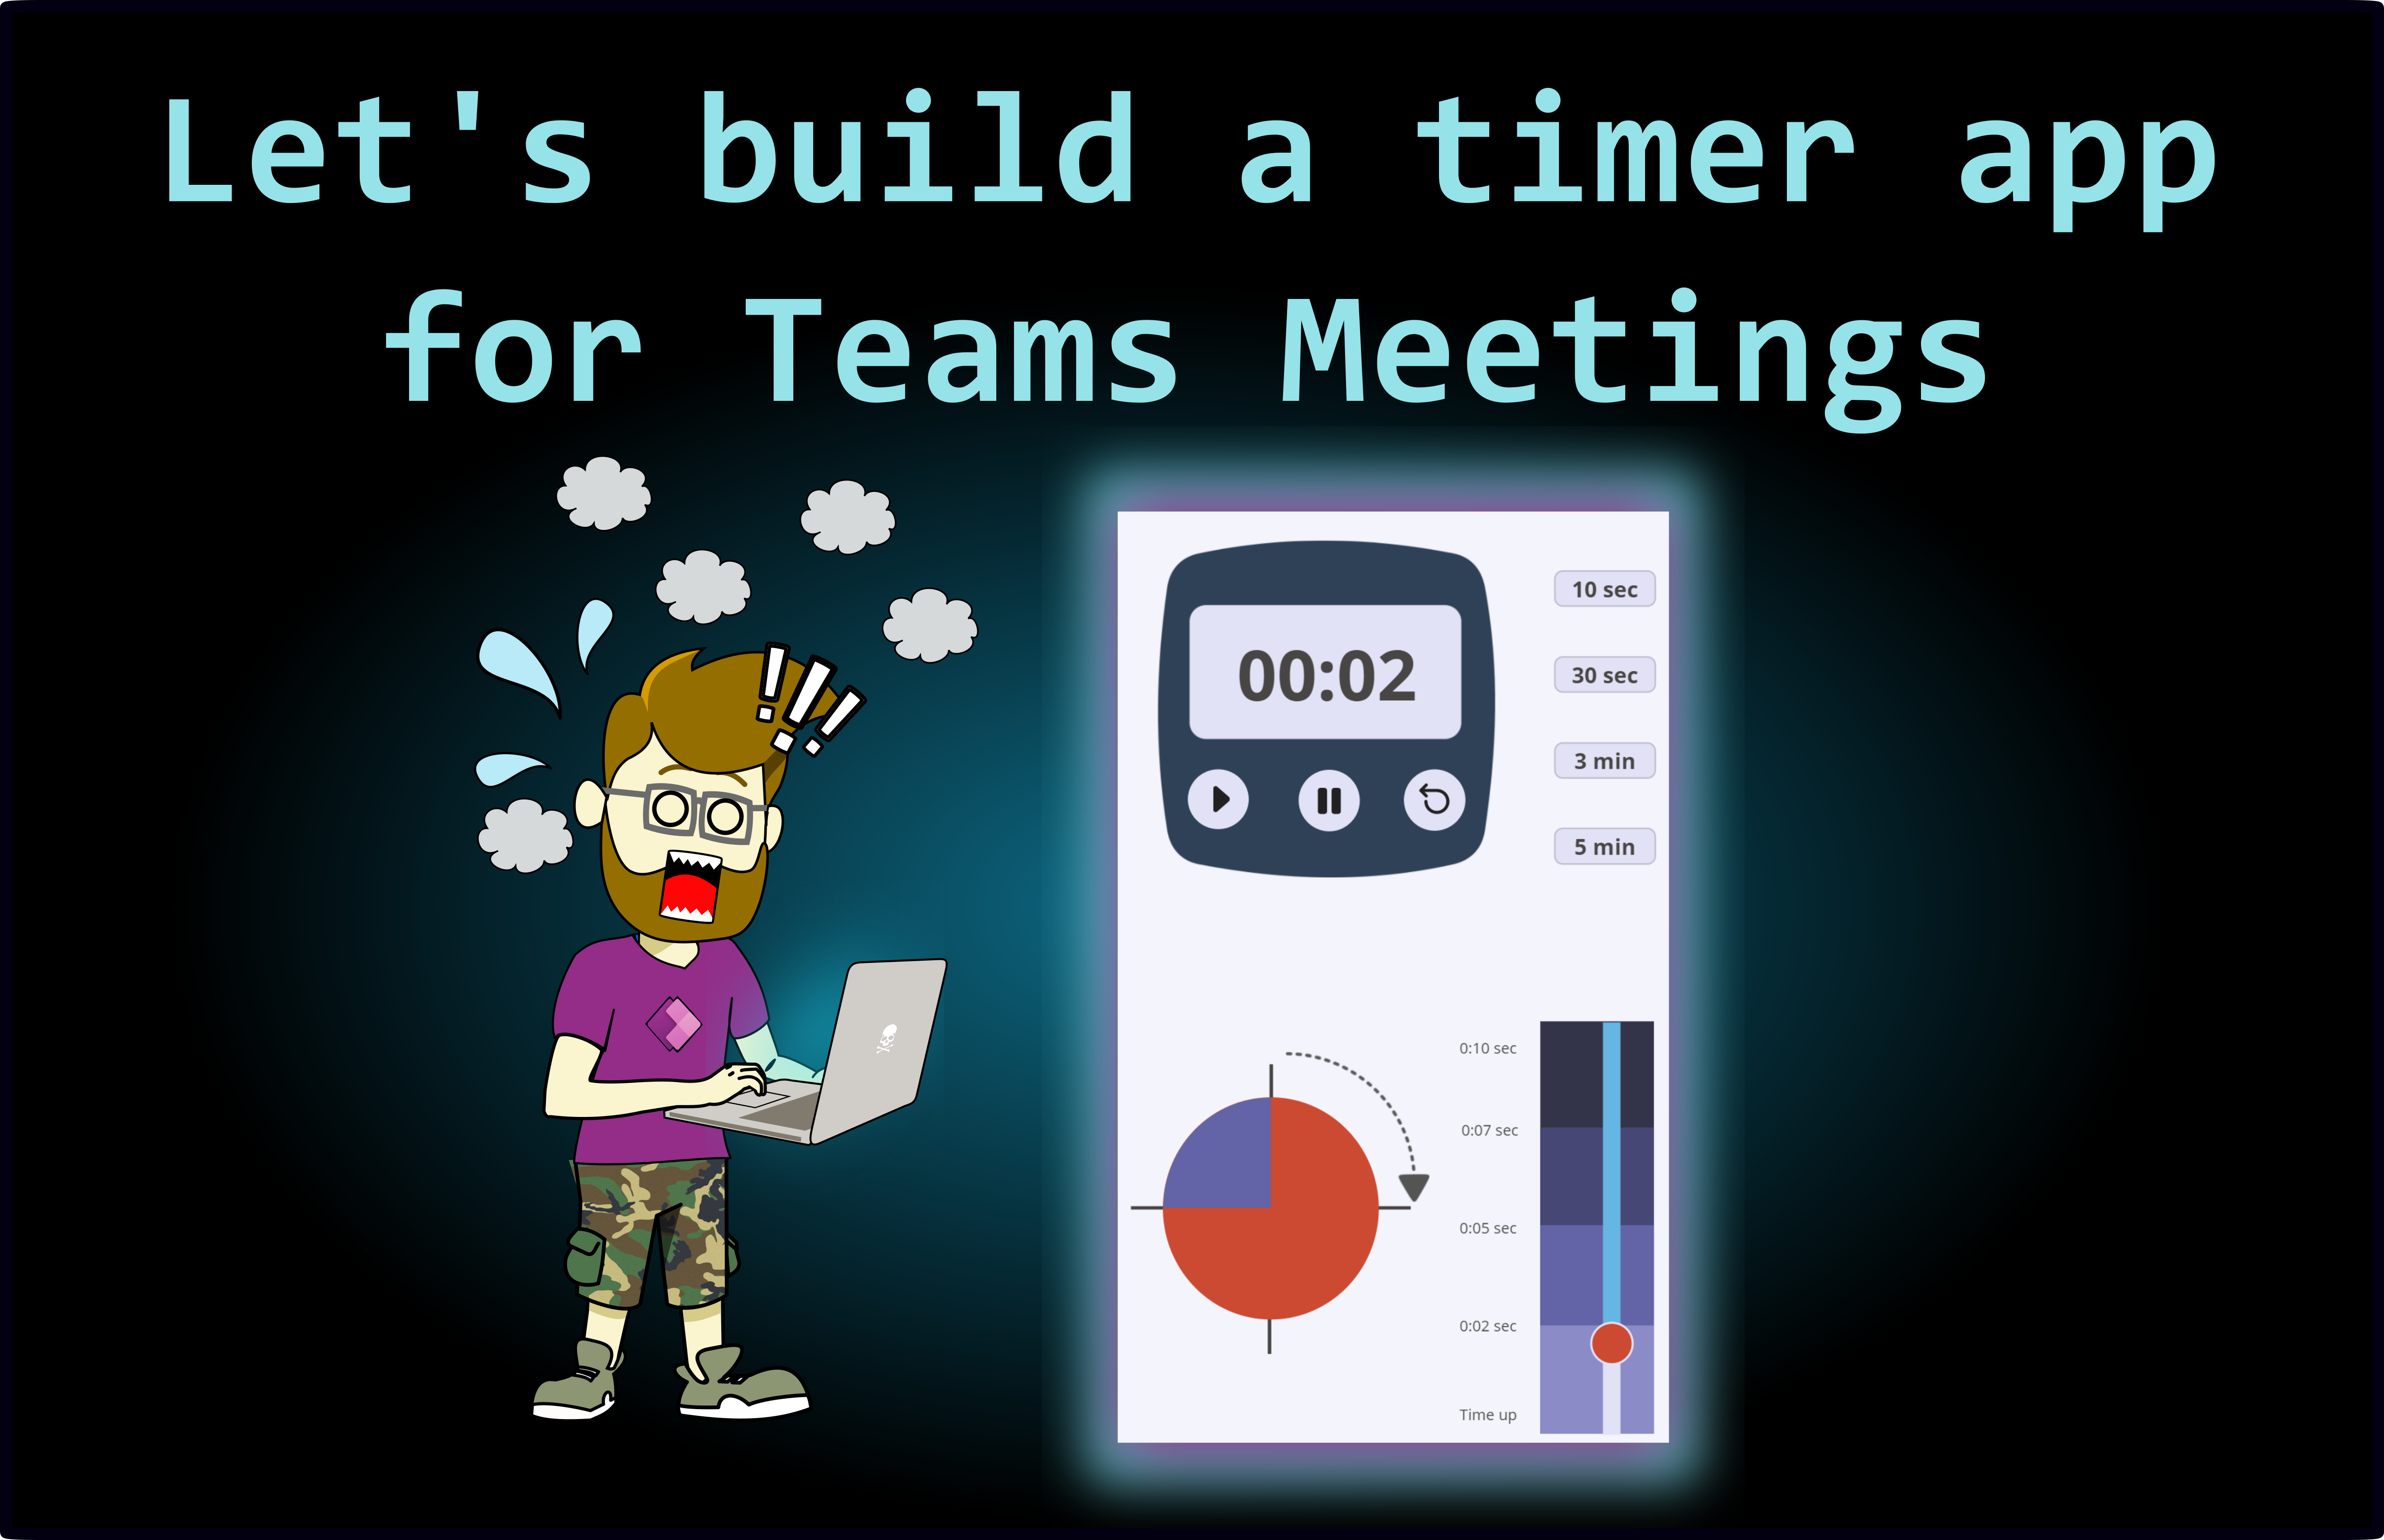 Let's build a timer app for Teams meetings.